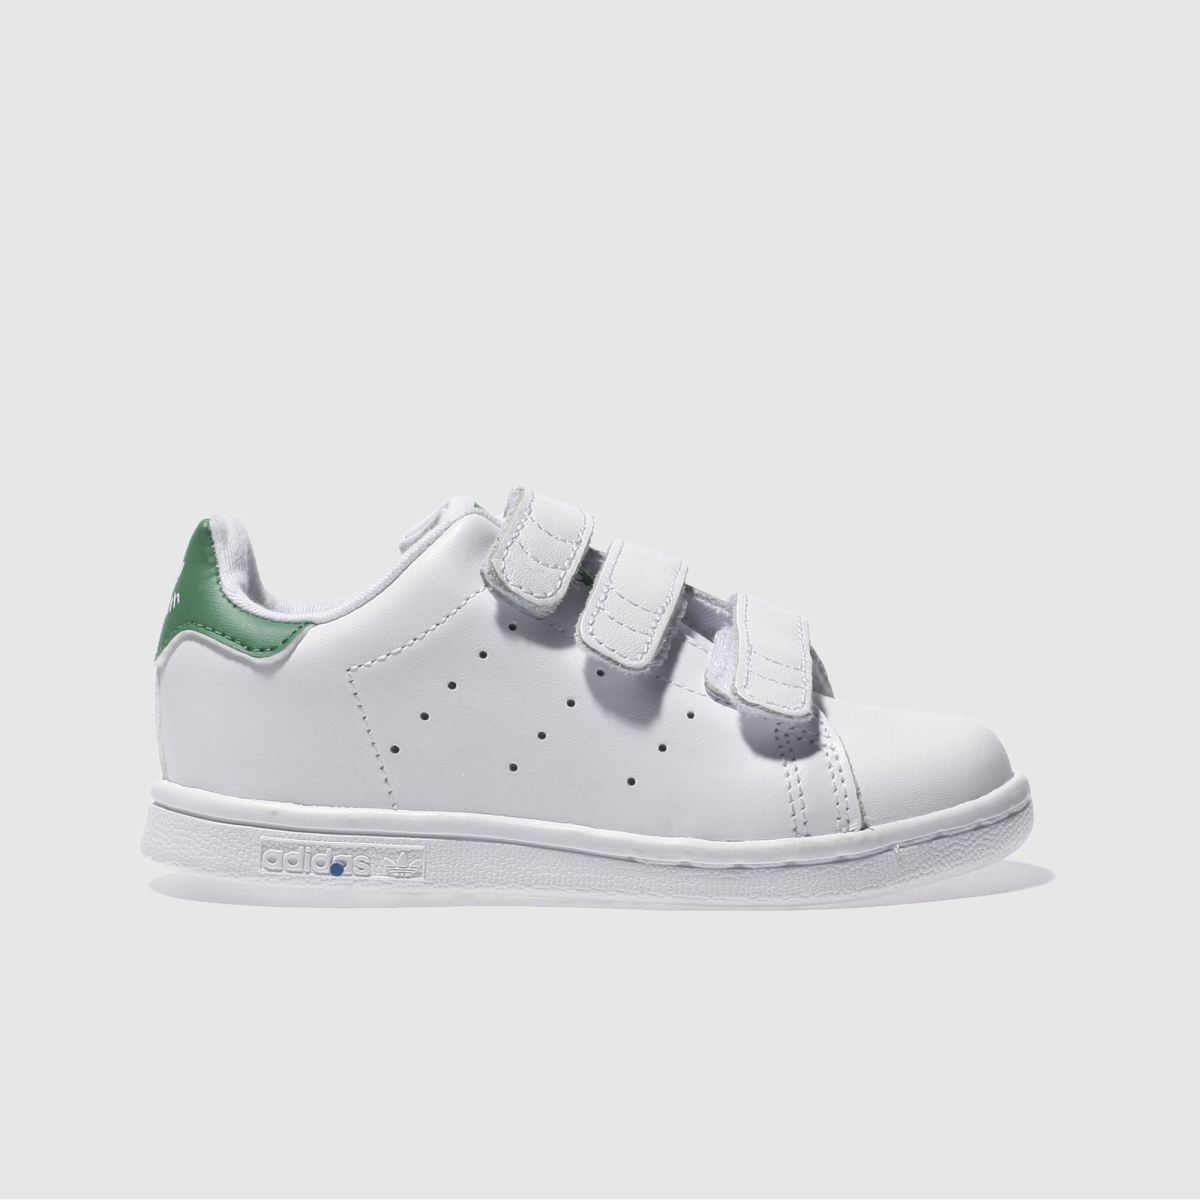 adidas white & green stan smith Boys Toddler Trainers